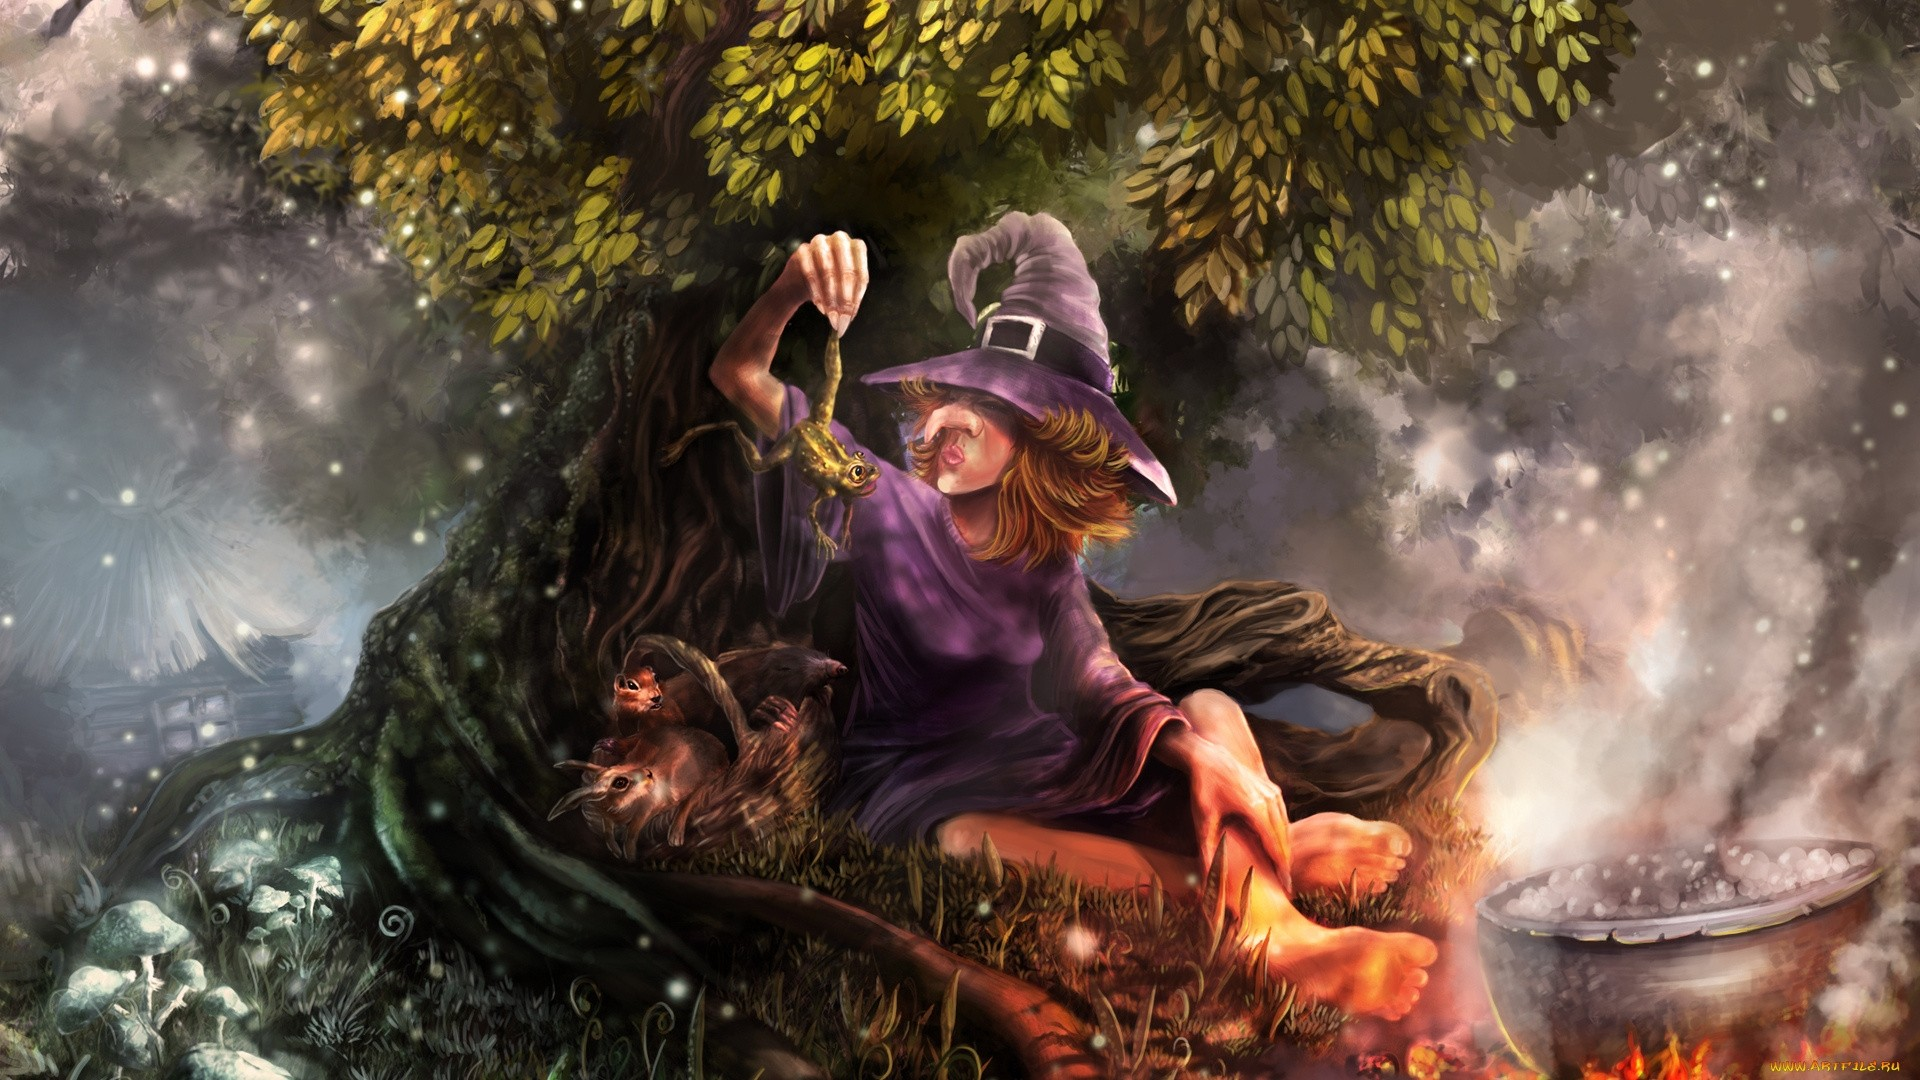 Witch hd wallpaper download